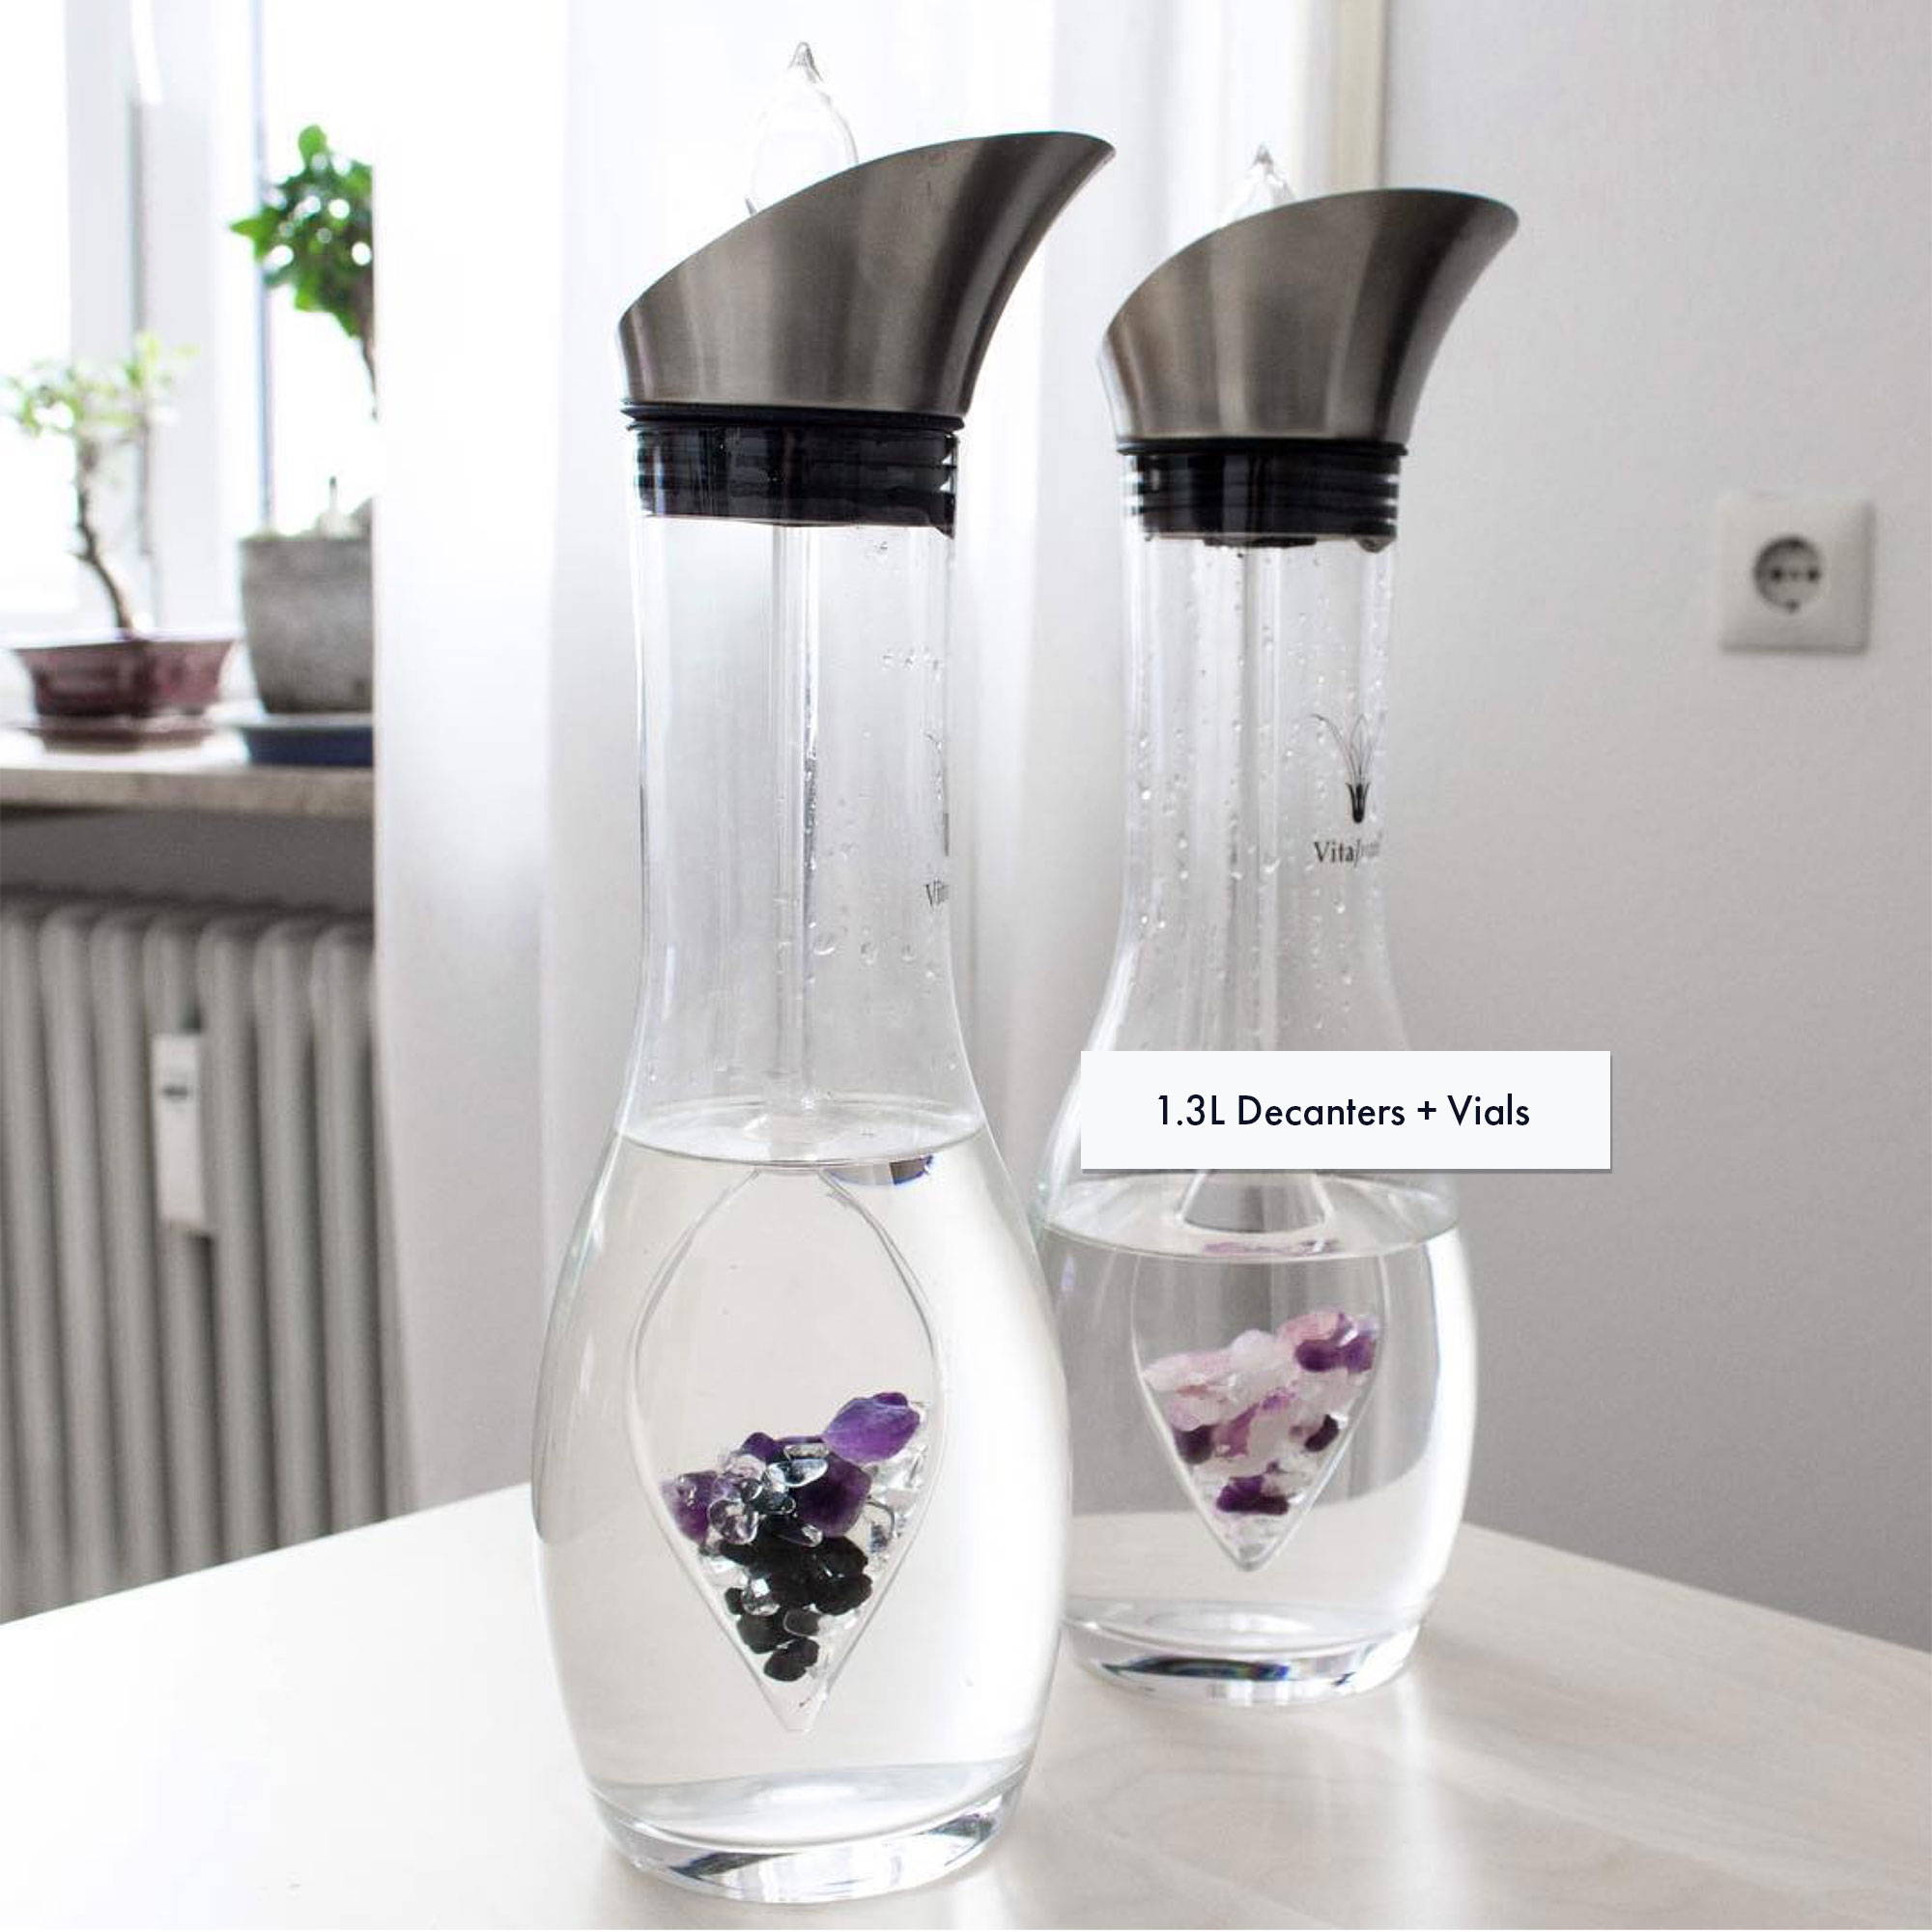 VitaJuwel 1.3L Decanter